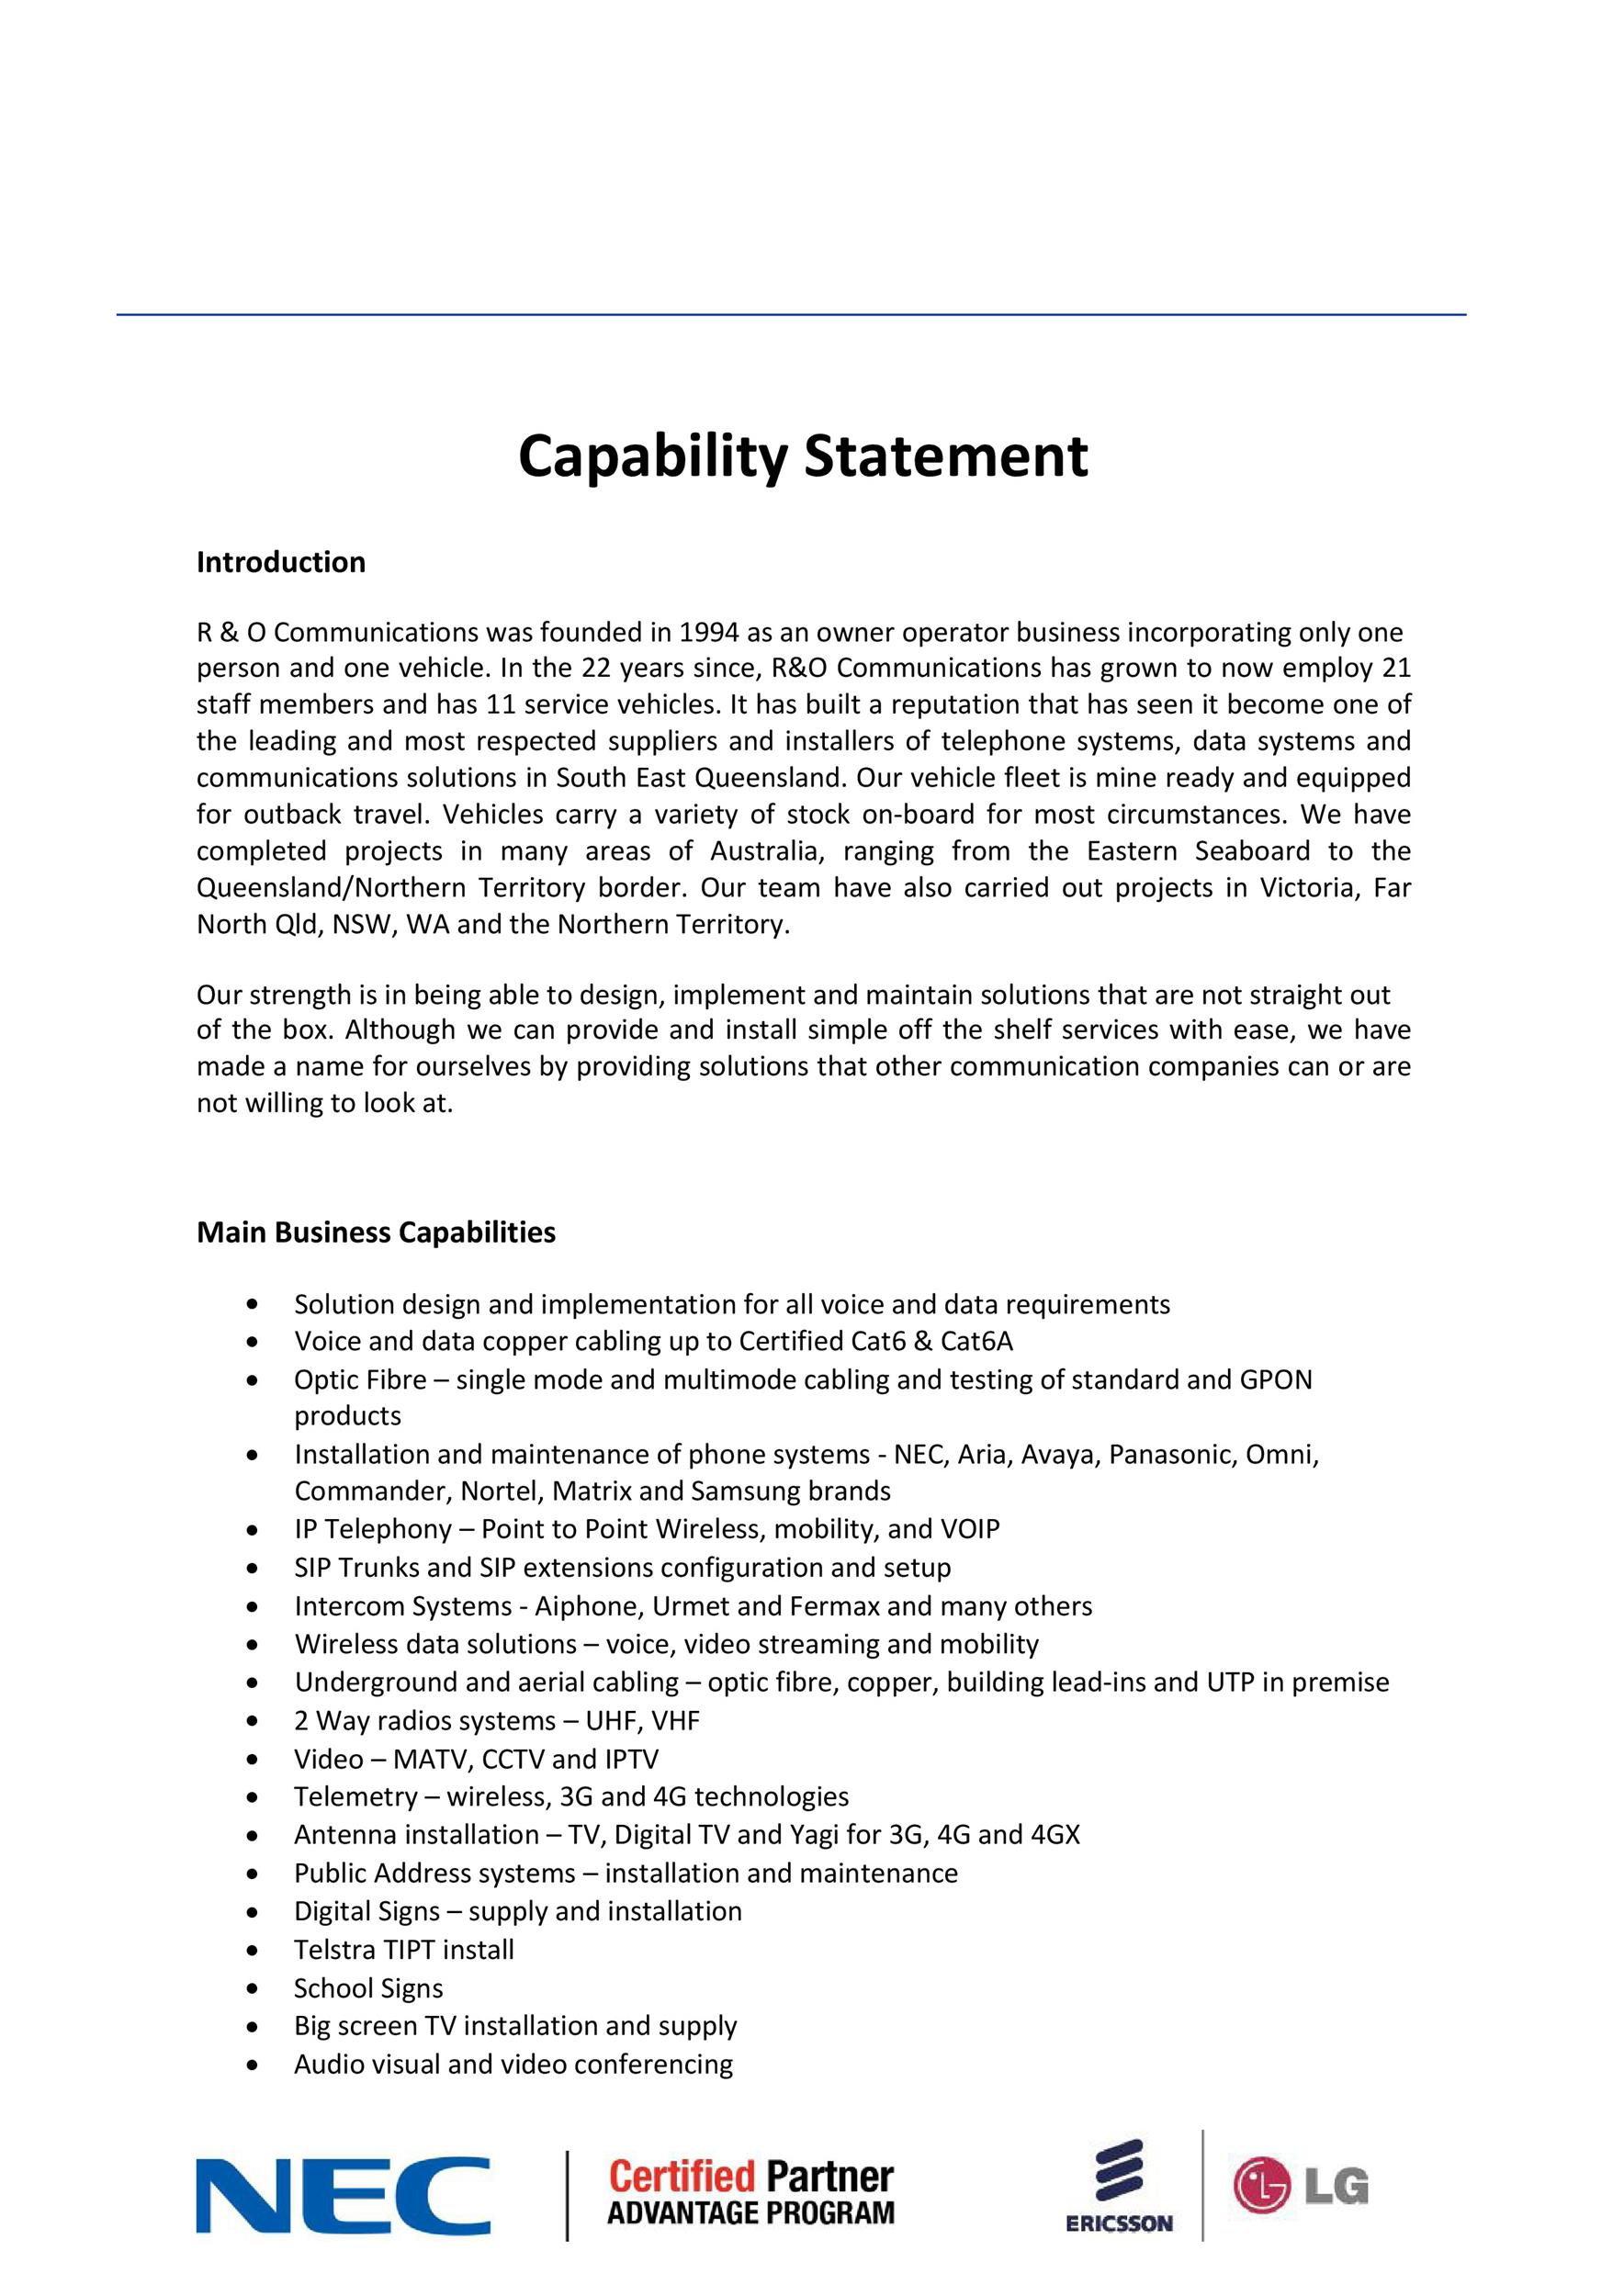 Free capability statement 32